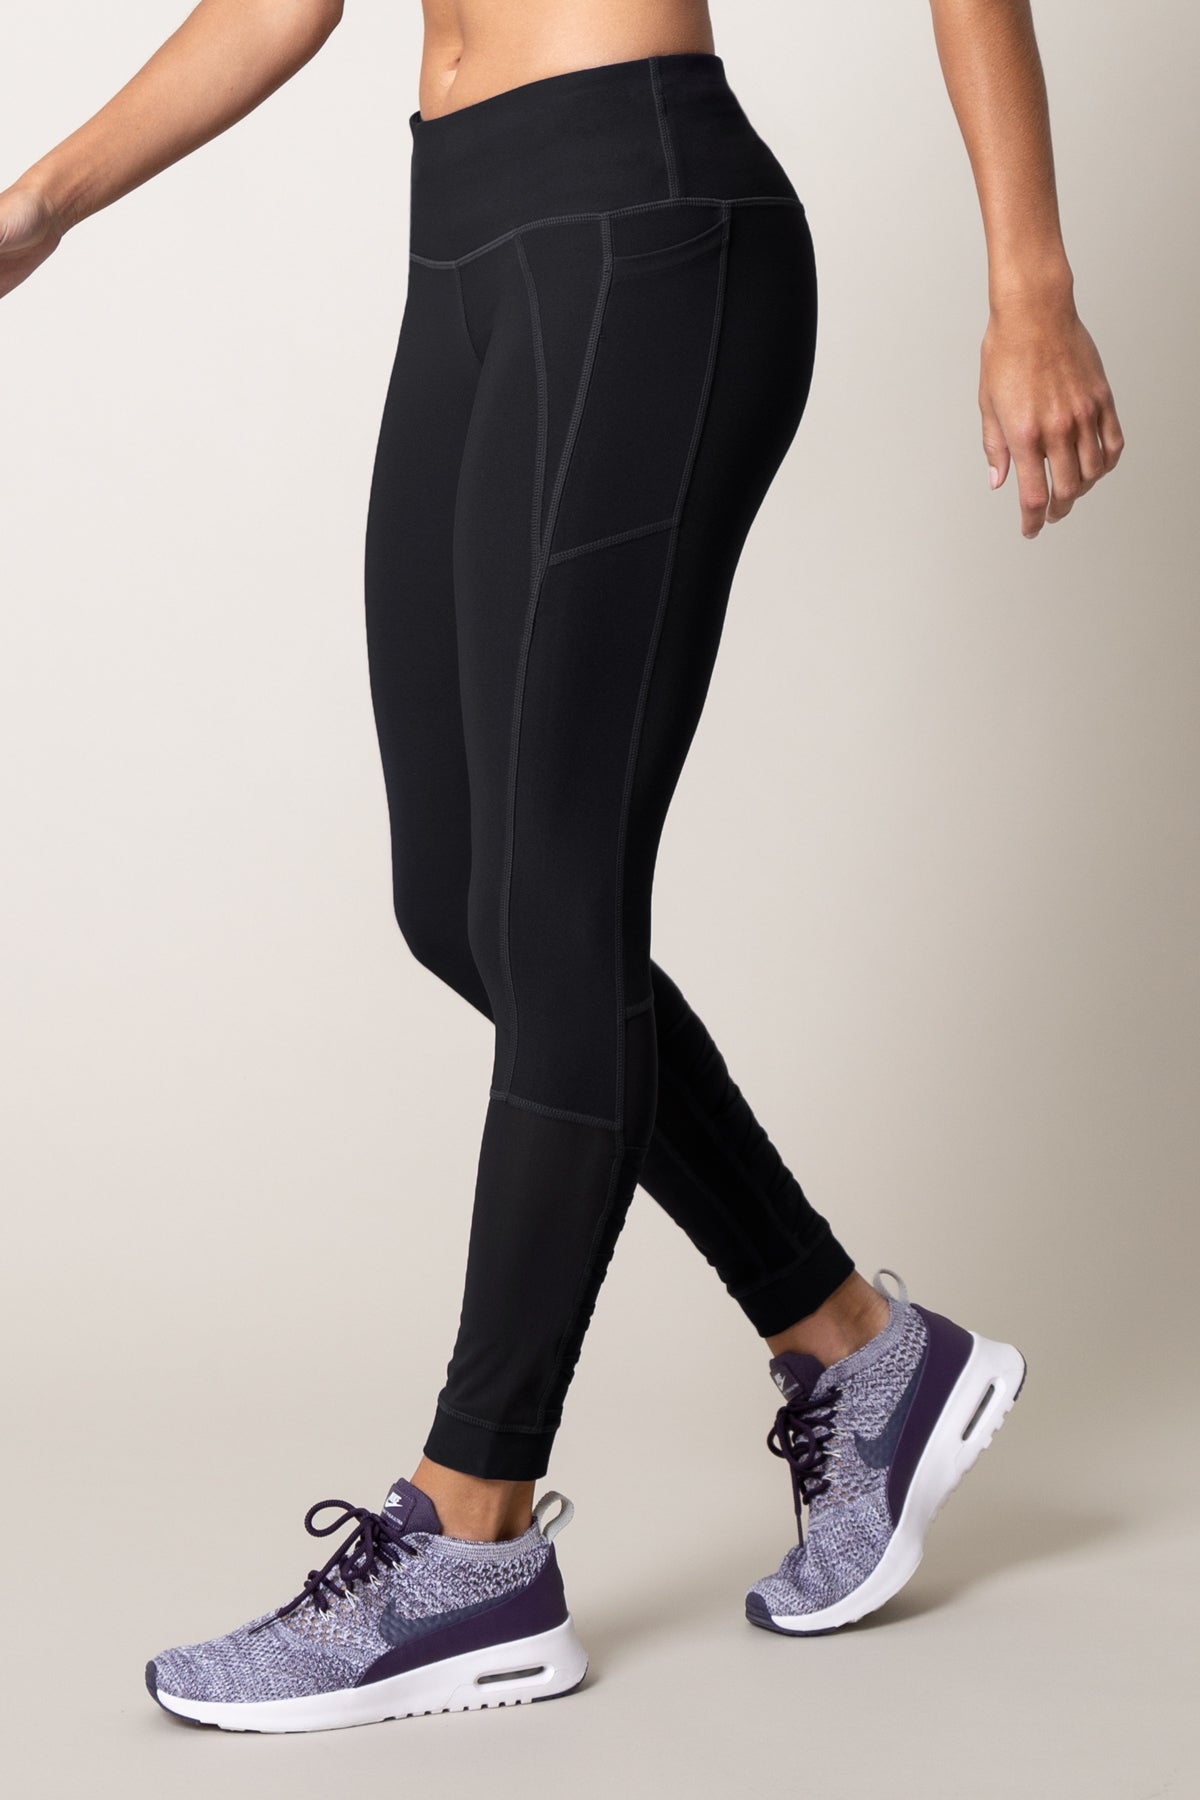 0117e43022 Emulate 7/8 Lace-Up Mesh Legging – MPG Sport USA